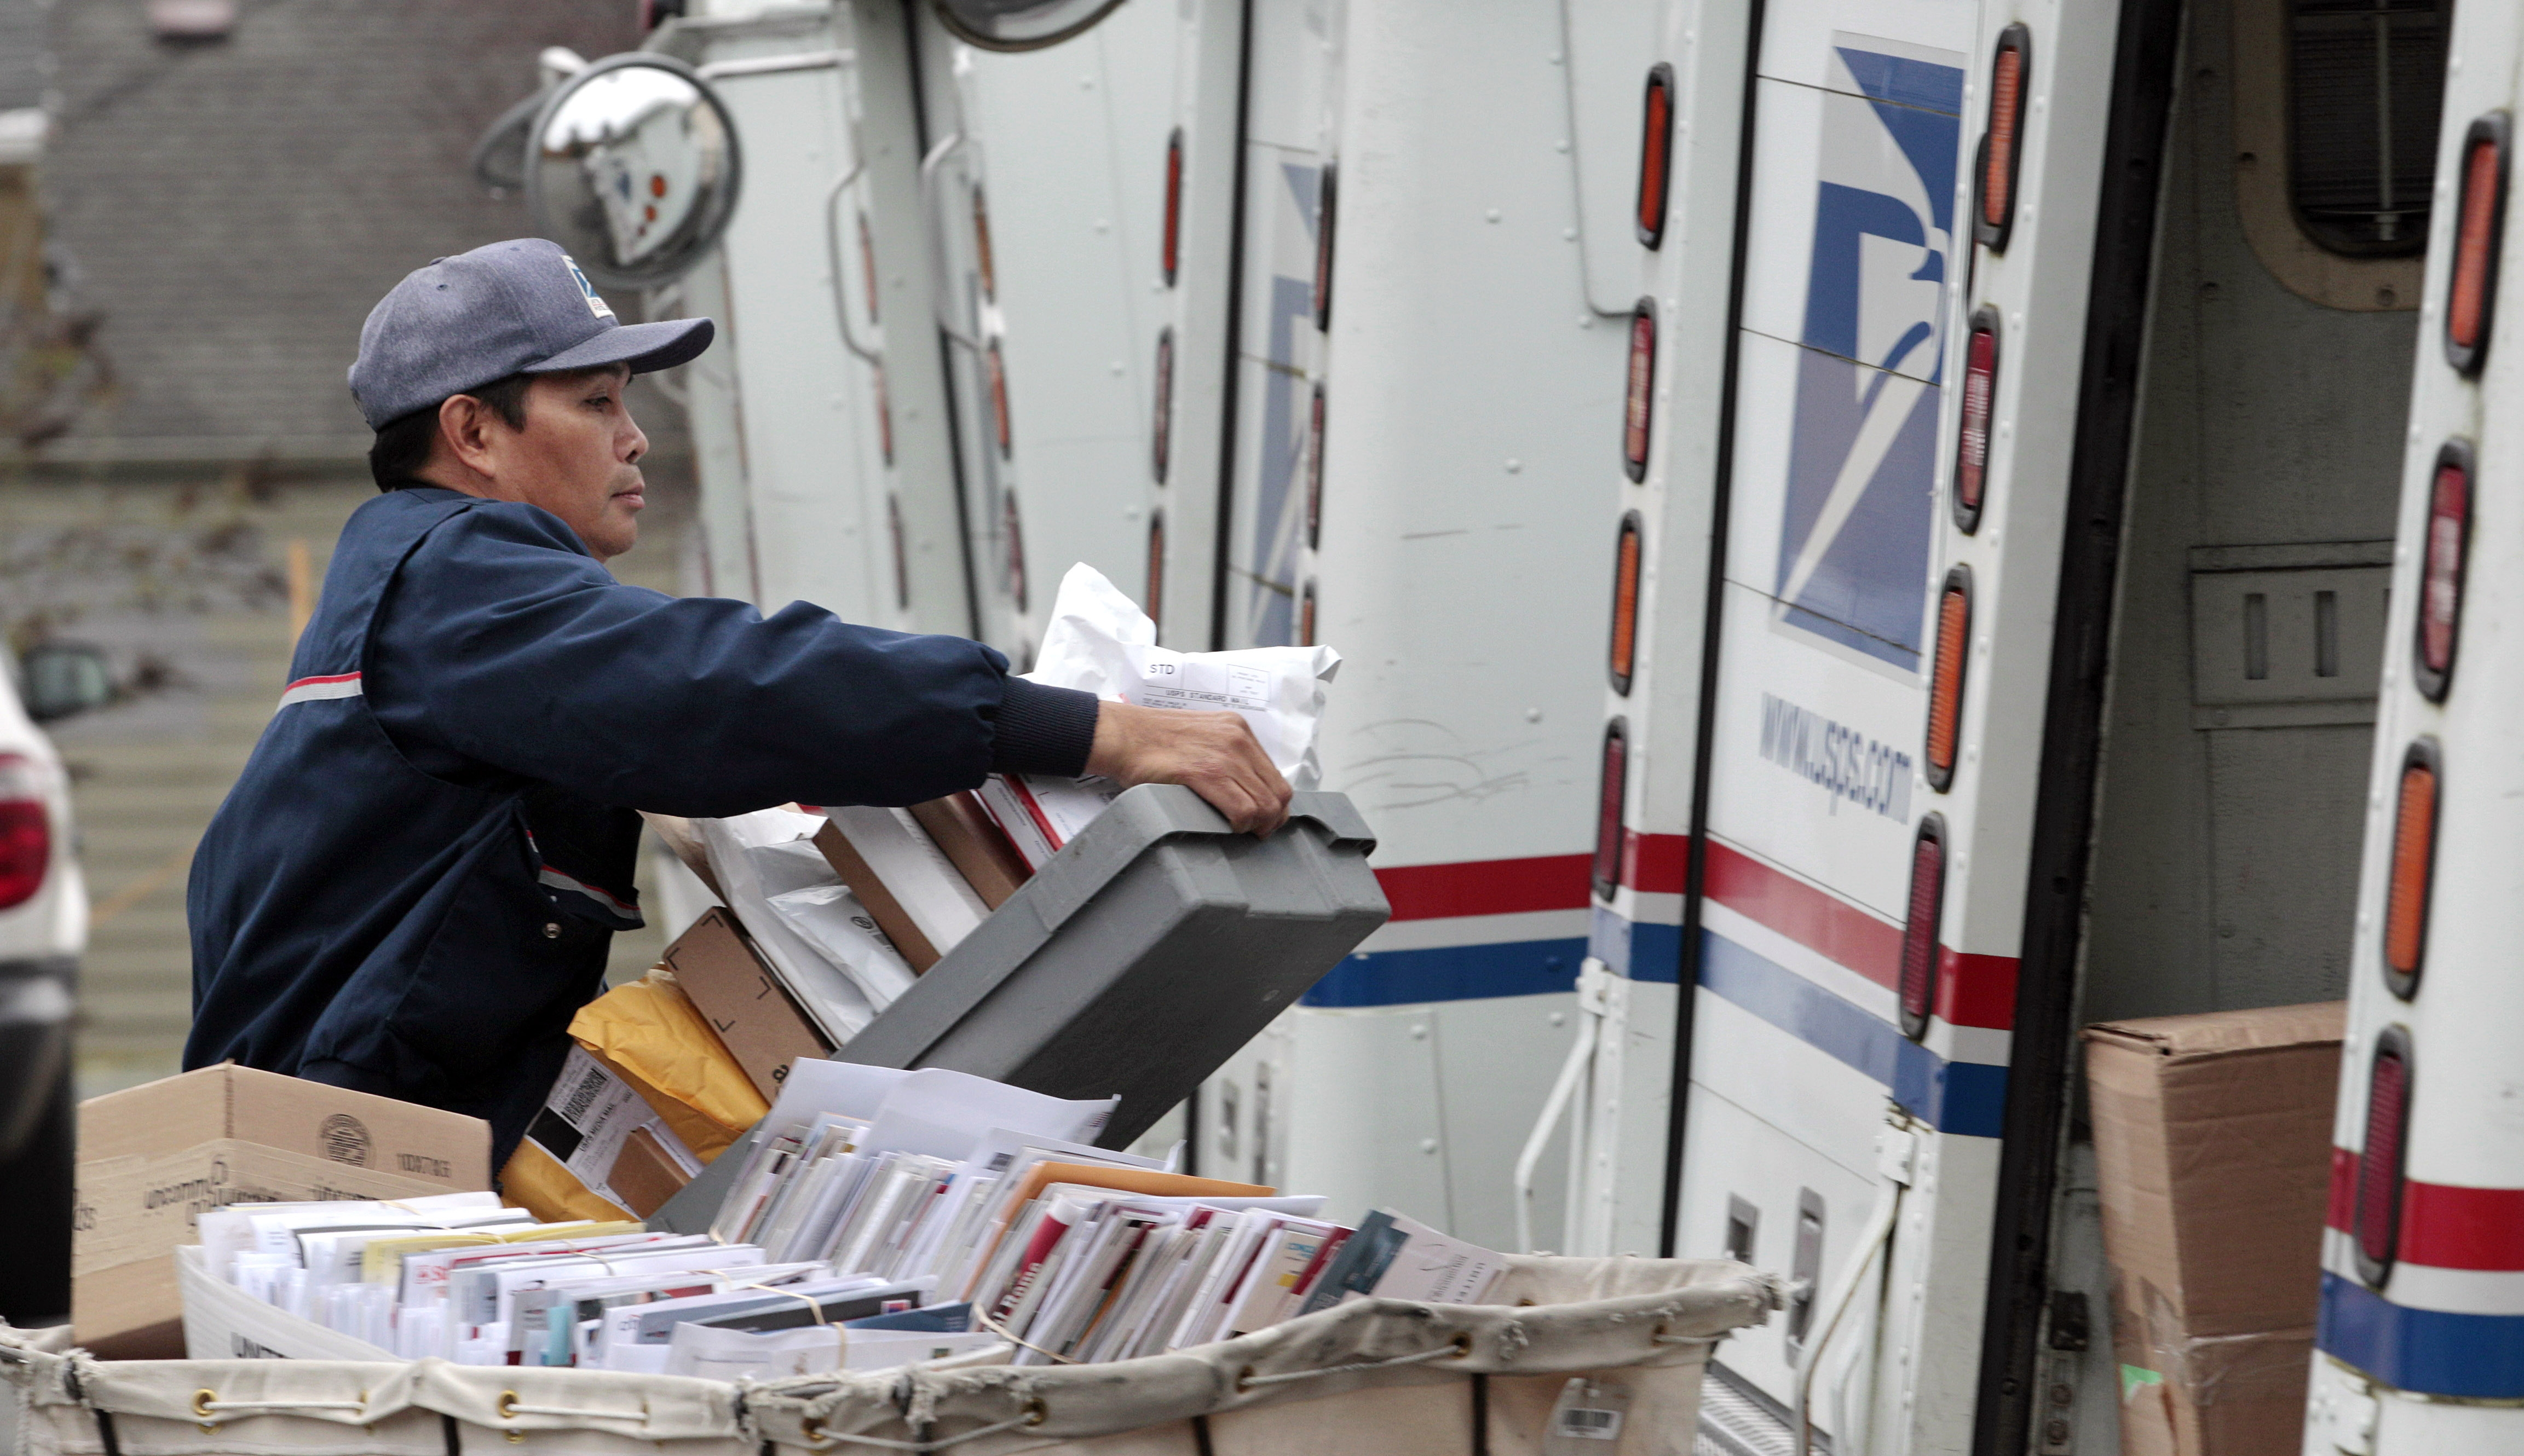 A letter carrier moves boxes of mail into his truck to begin delivery at a post office. (AP Photo/Elaine Thompson, File)